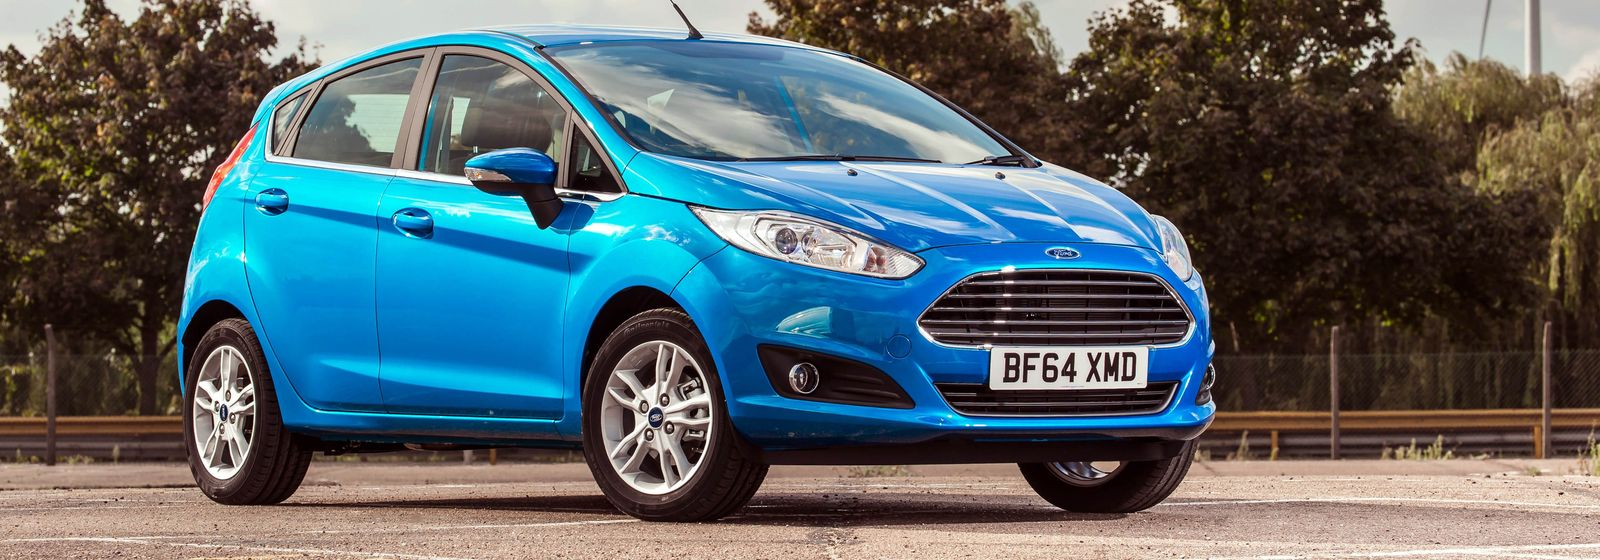 colour car metallic : Ford Fiesta In Candy Blue A Special Paint With A Tinted Clearcoat